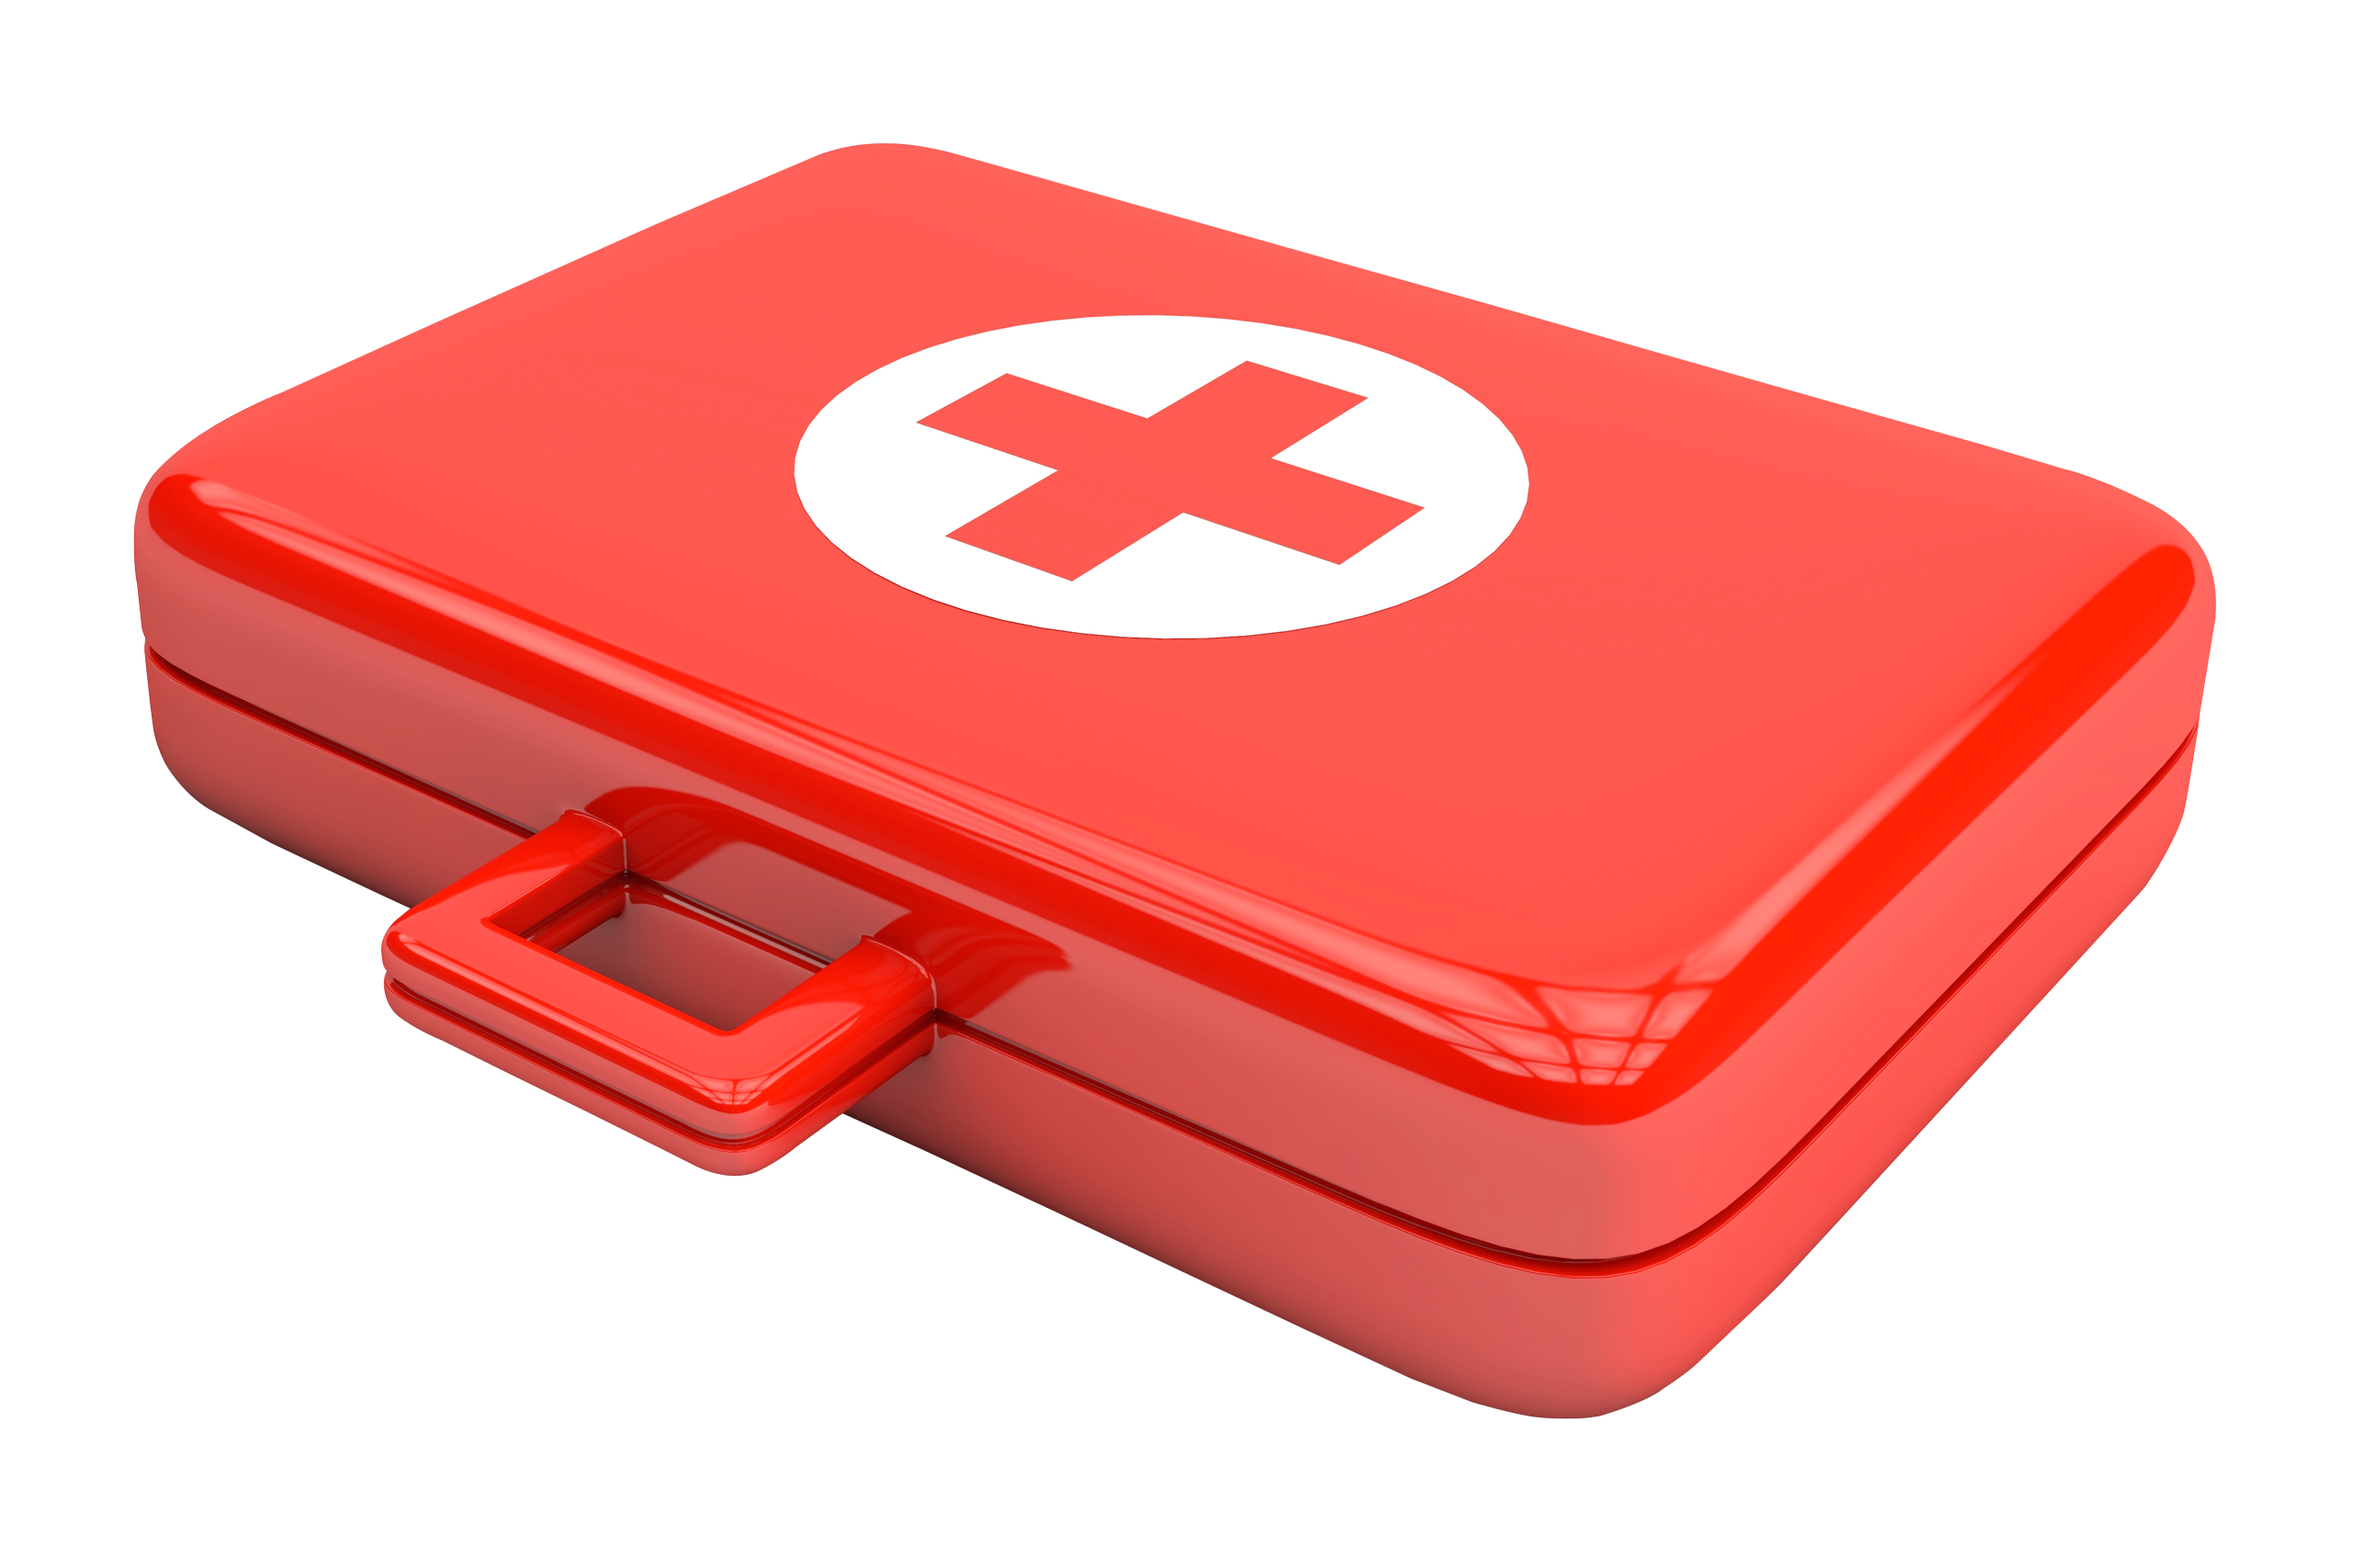 First Aid PNG HD Images